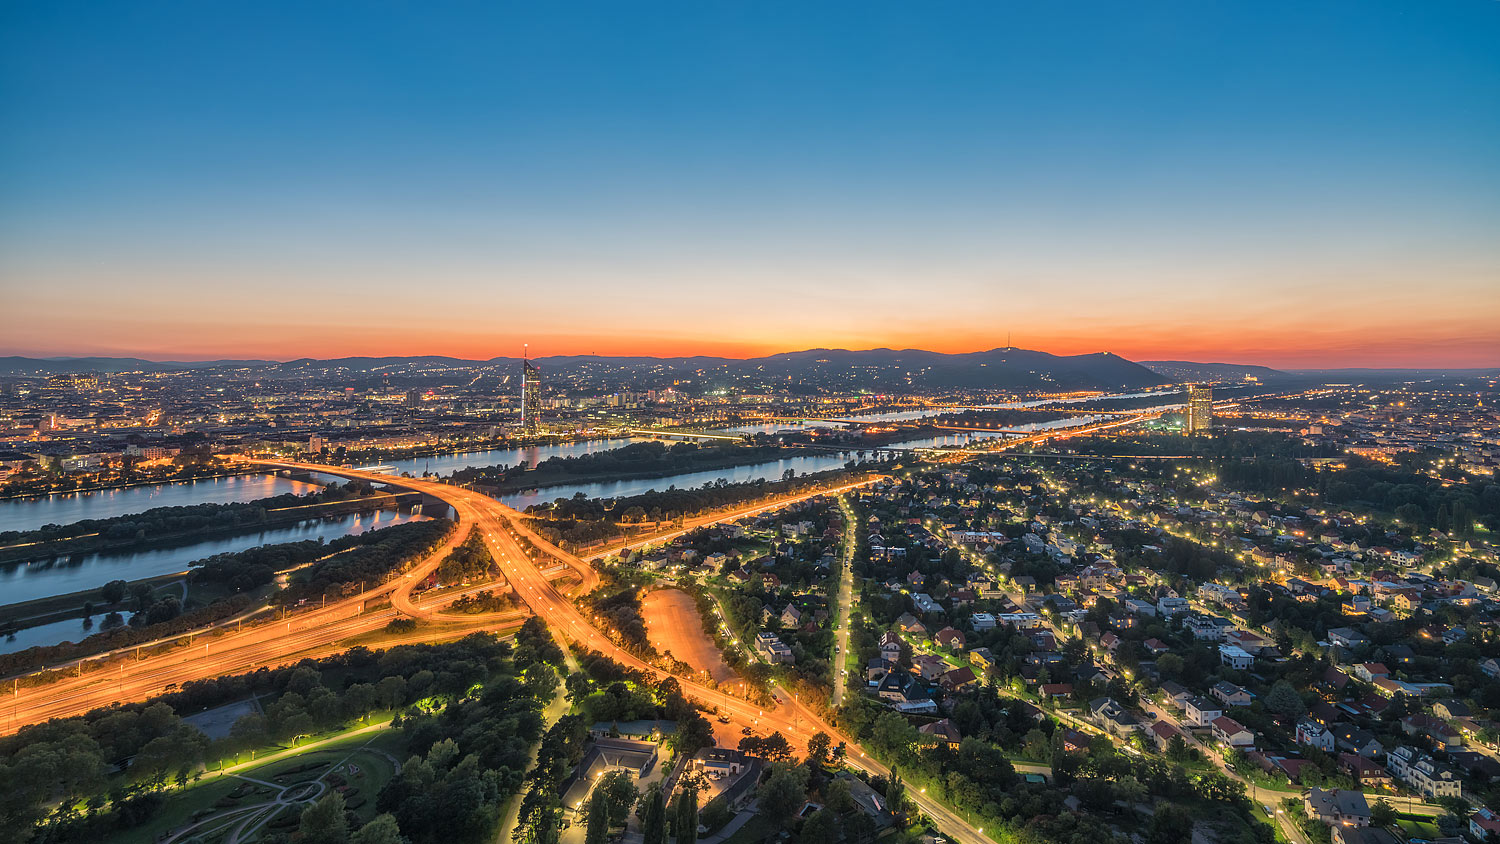 Vienna (Wien), Austria - Panorama of the City and the Danube River Shortly after Sunset